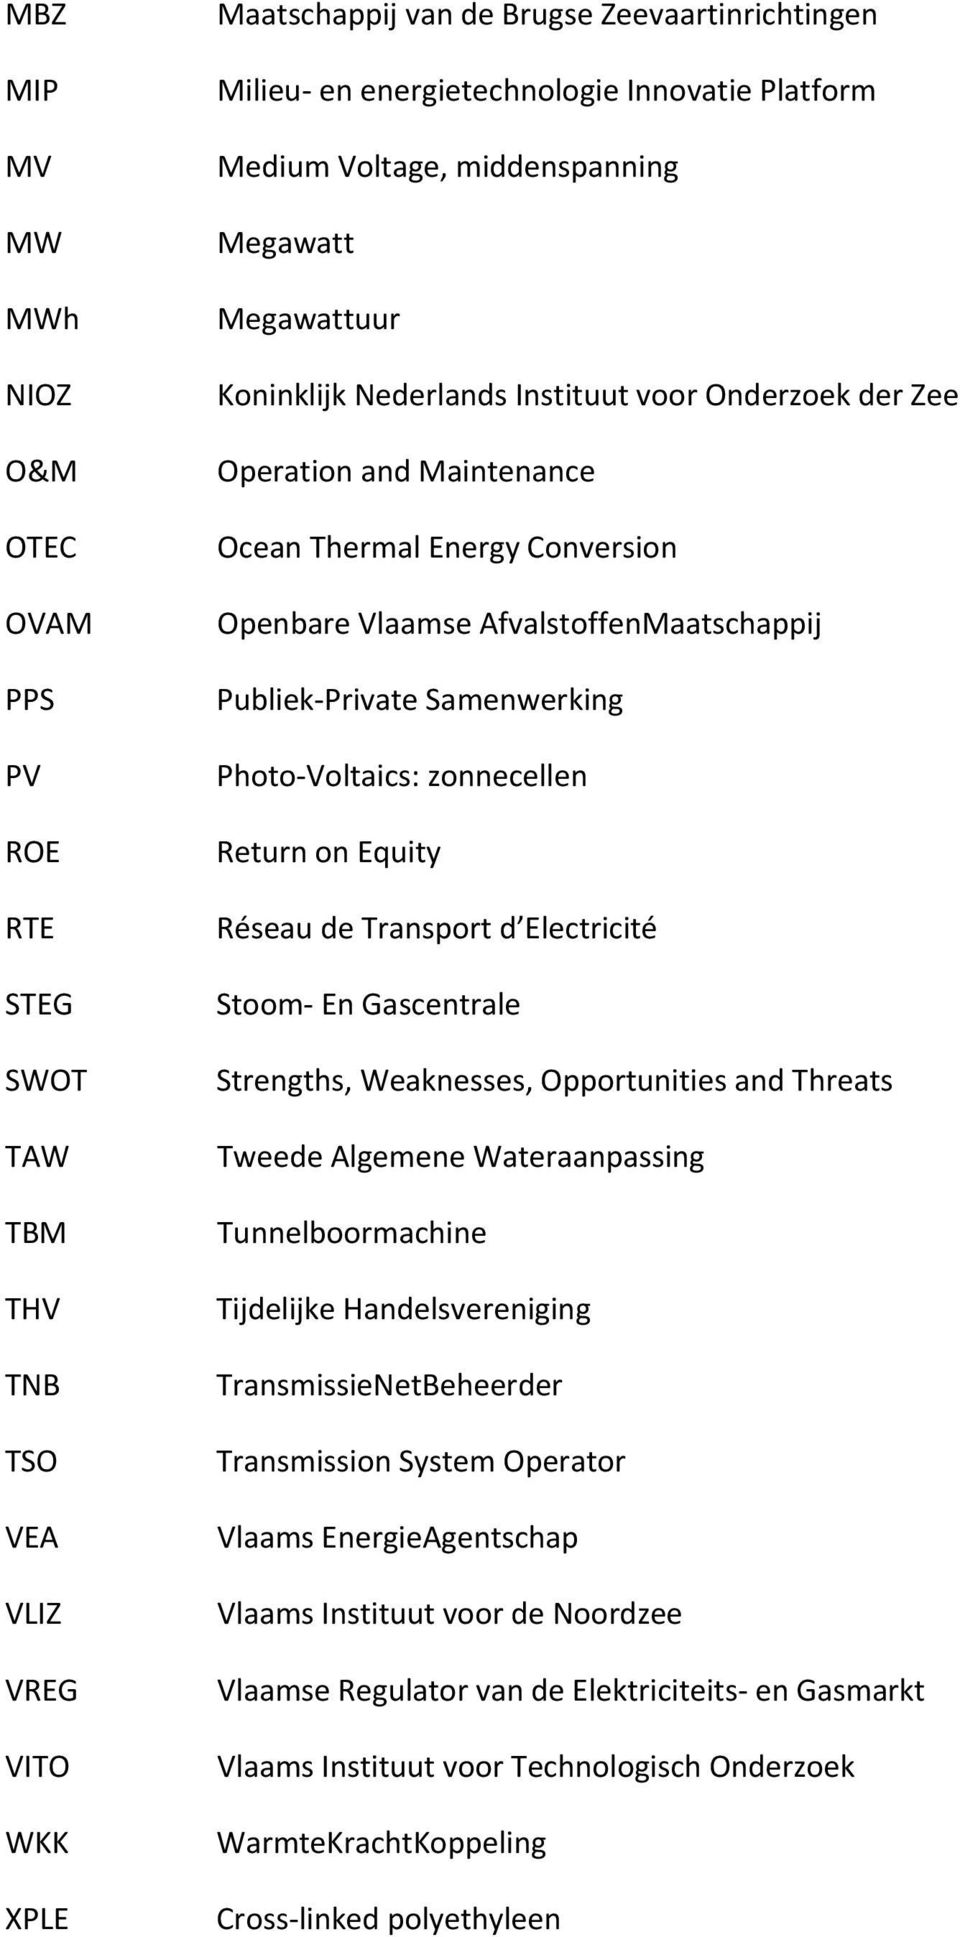 AfvalstoffenMaatschappij Publiek Private Samenwerking Photo Voltaics: zonnecellen Return on Equity Réseau de Transport d Electricité Stoom En Gascentrale Strengths, Weaknesses, Opportunities and